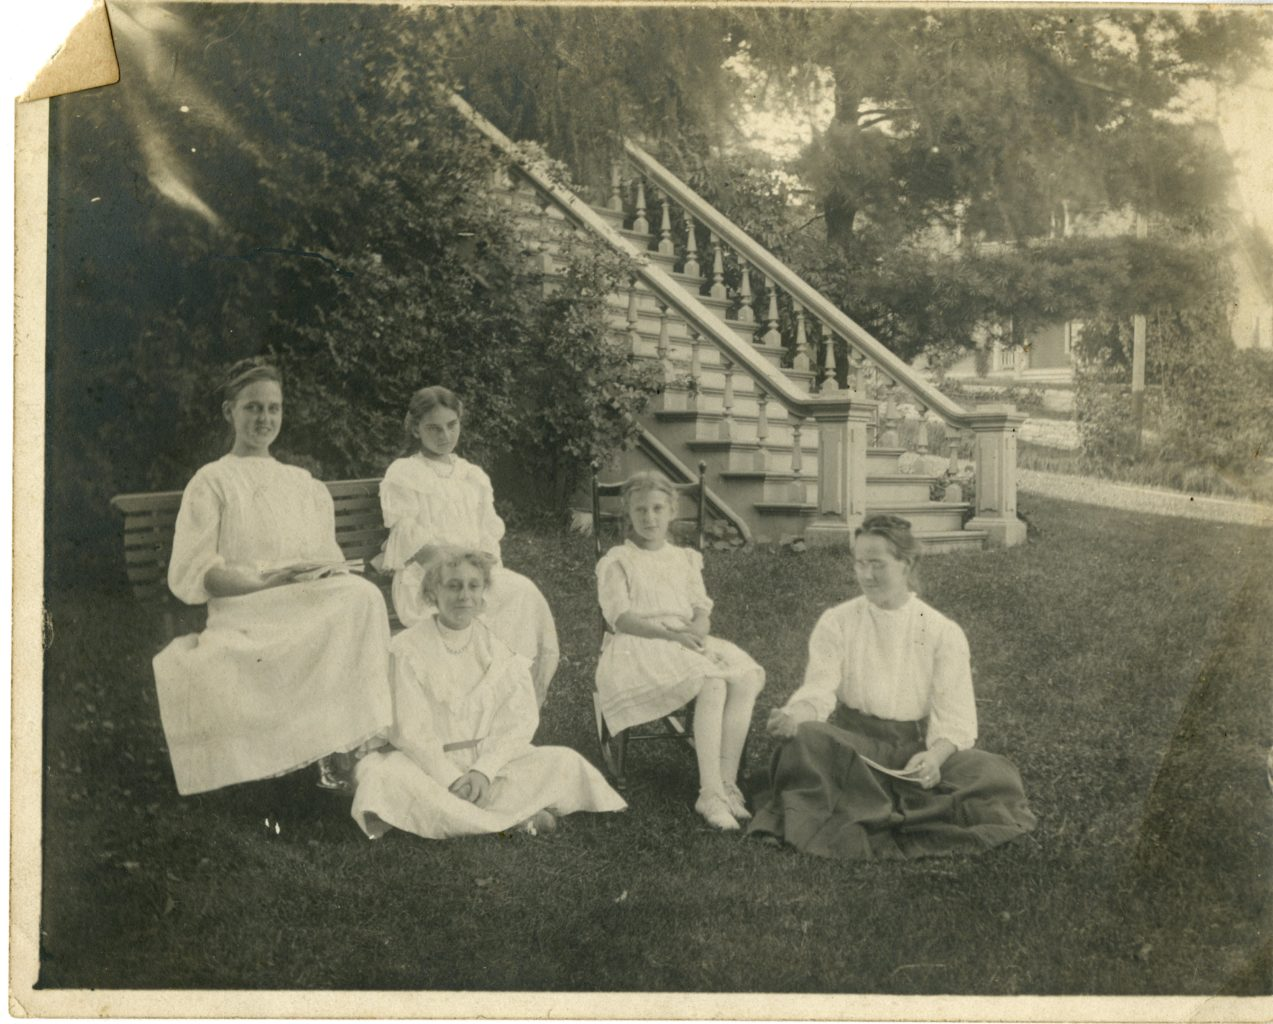 Five young girls sit in a lawn outside of a house.